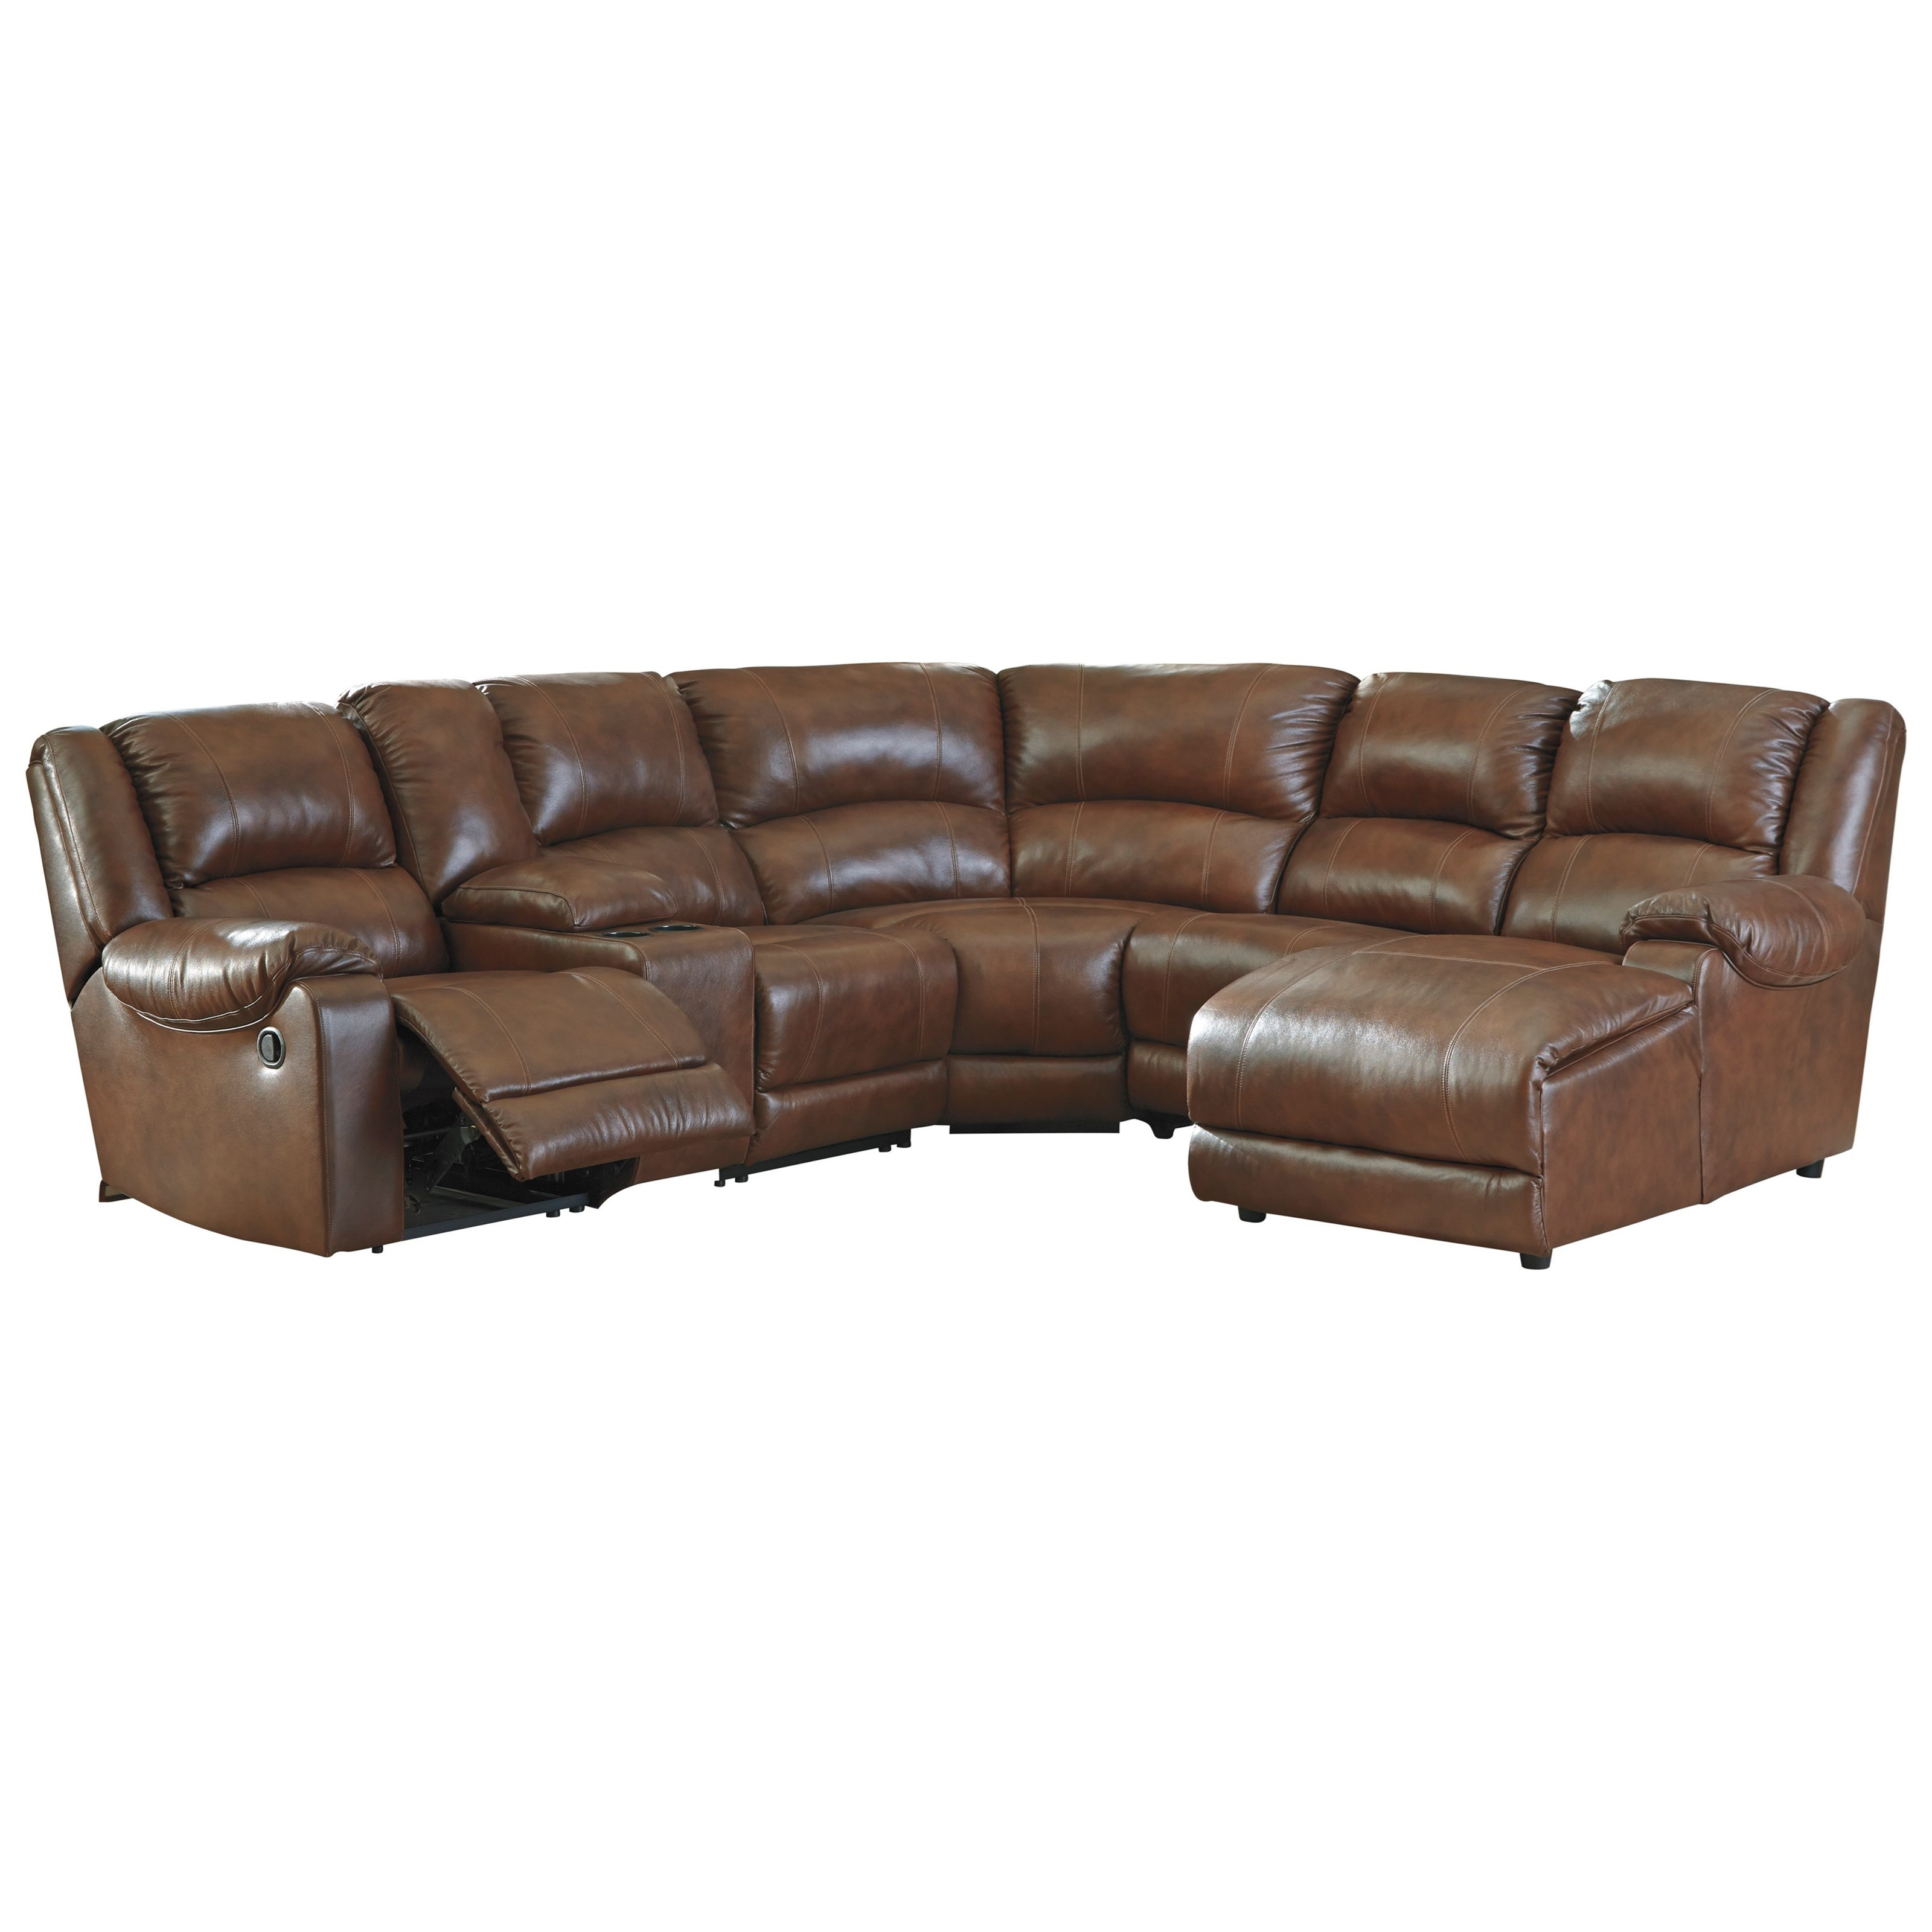 Signature design by ashley billwedge leather match for Ashley leather sectional with chaise